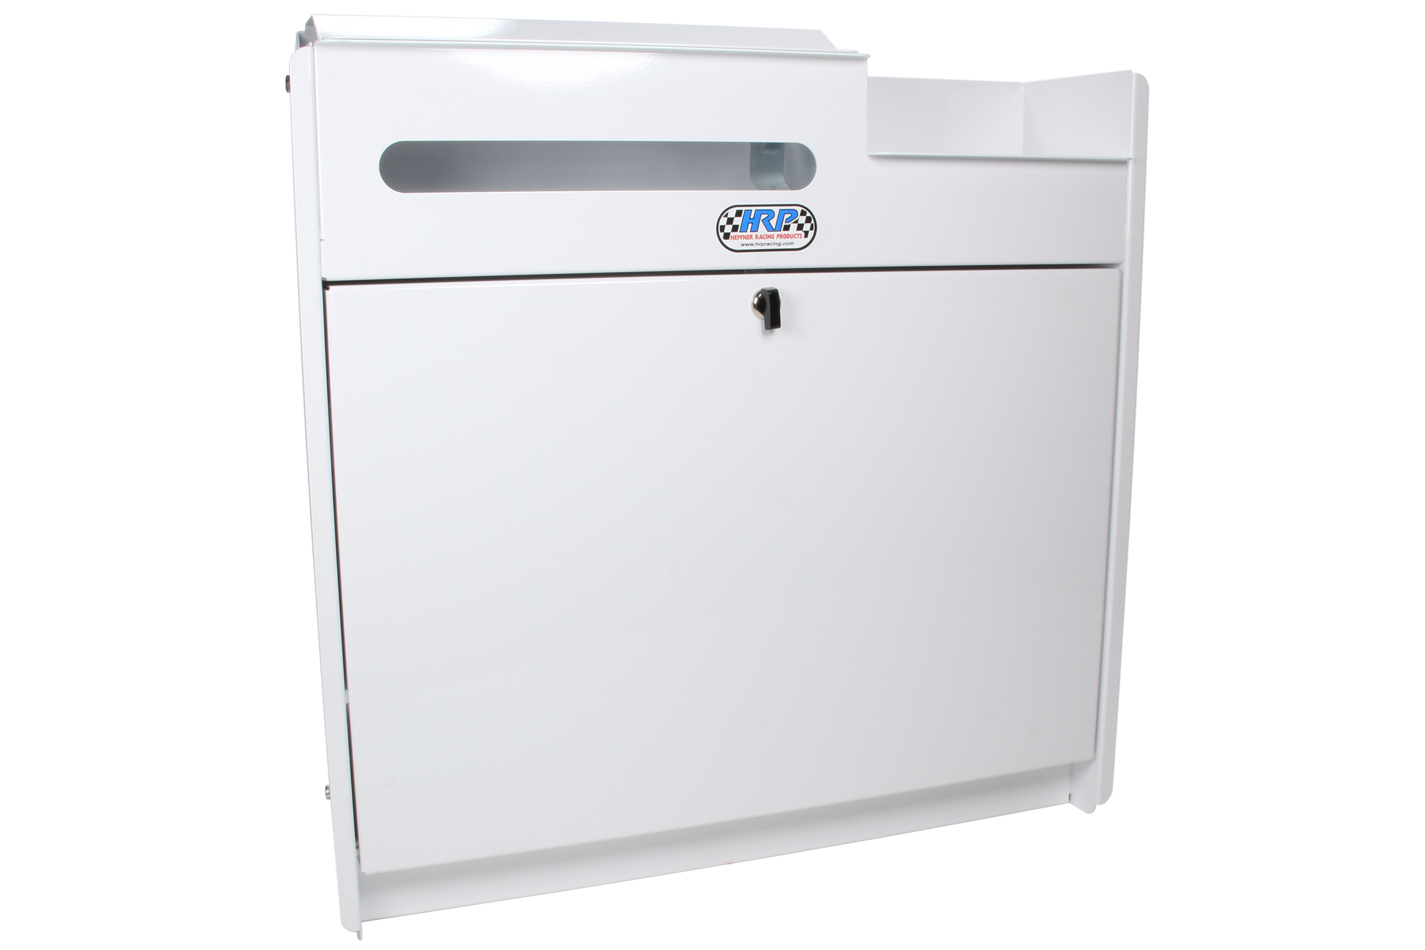 Hepfner Racing Products HRP6410-WHT Trailer Cabinet, Wall Mount, 23 in Square, Integral Utility Shelf, Aluminum, White Powder Coat, Each